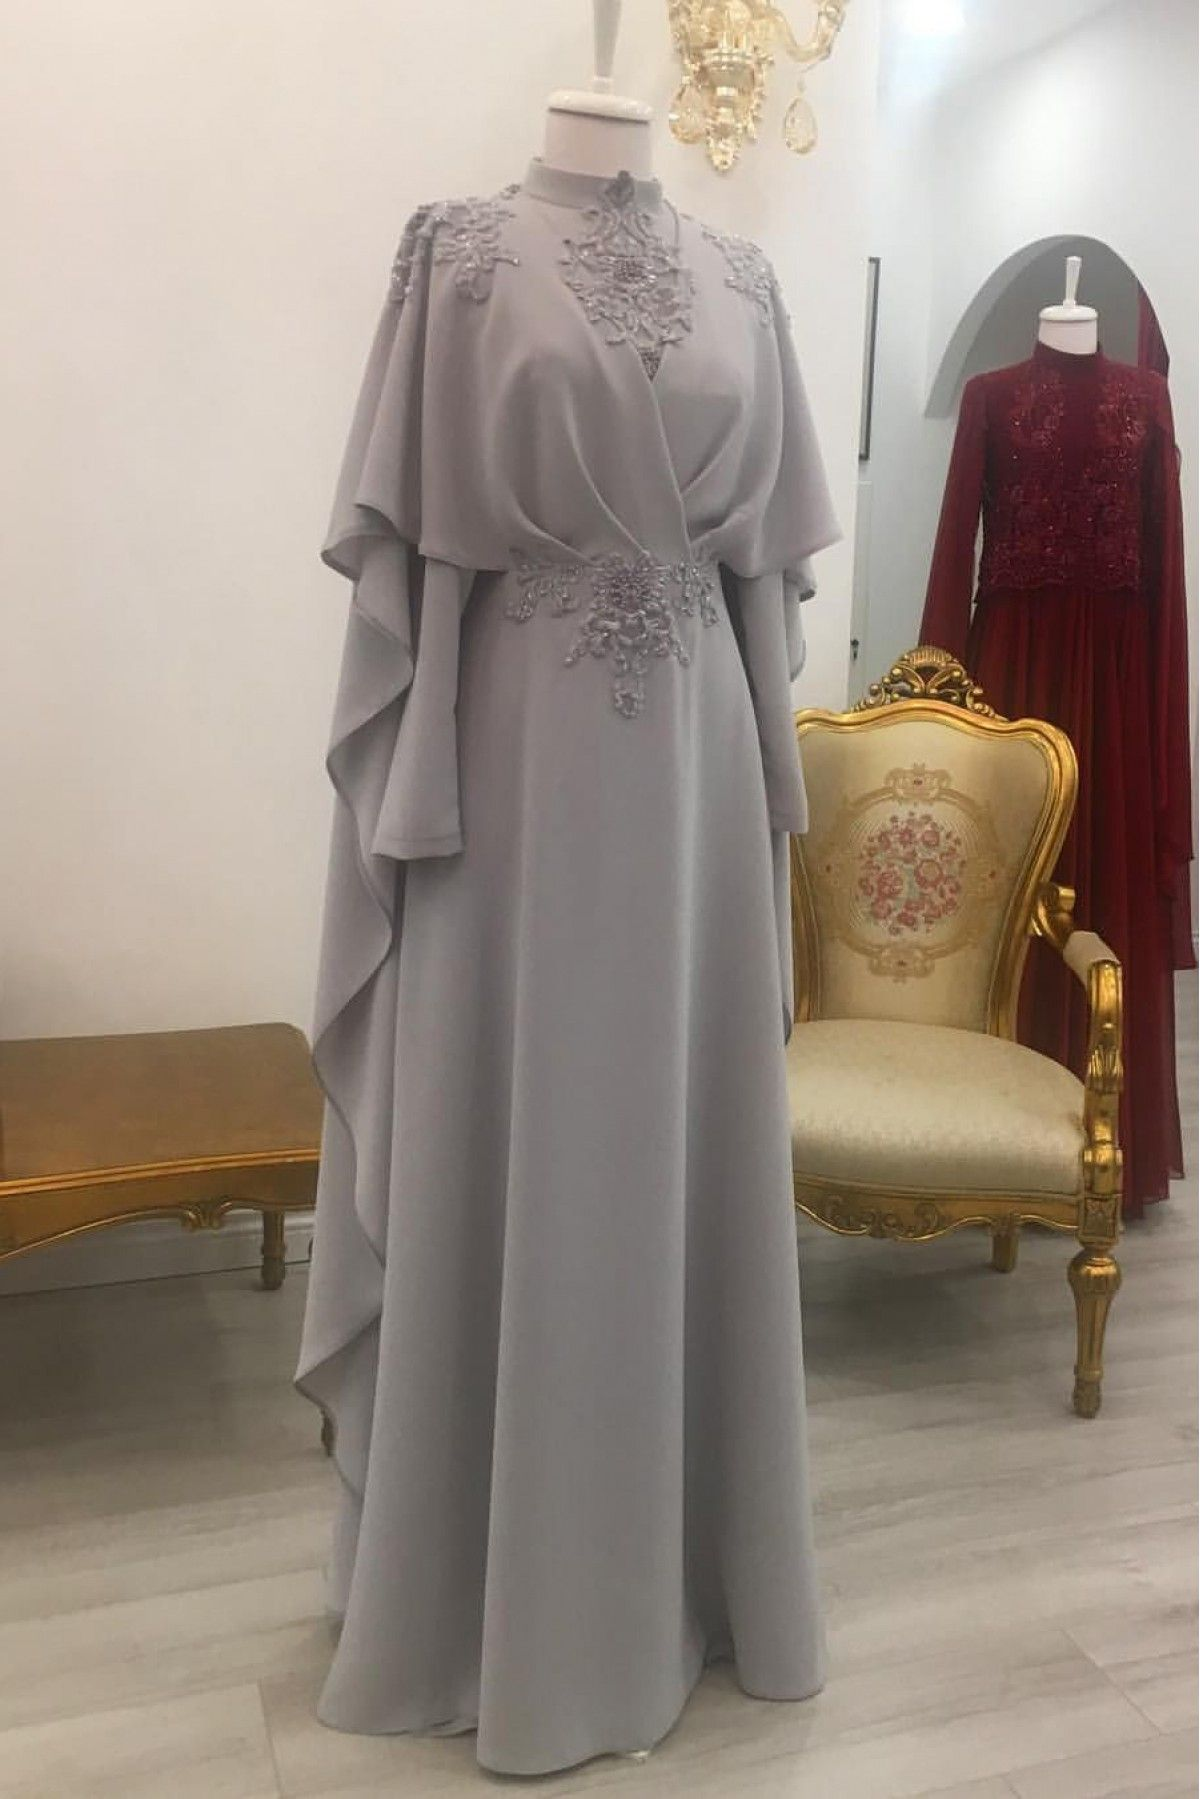 Buy Youdesign Georgette Abaya In Grey Colour for women   ninecolours.com.  Worldwide Free Shipping Available! f5bac696e181